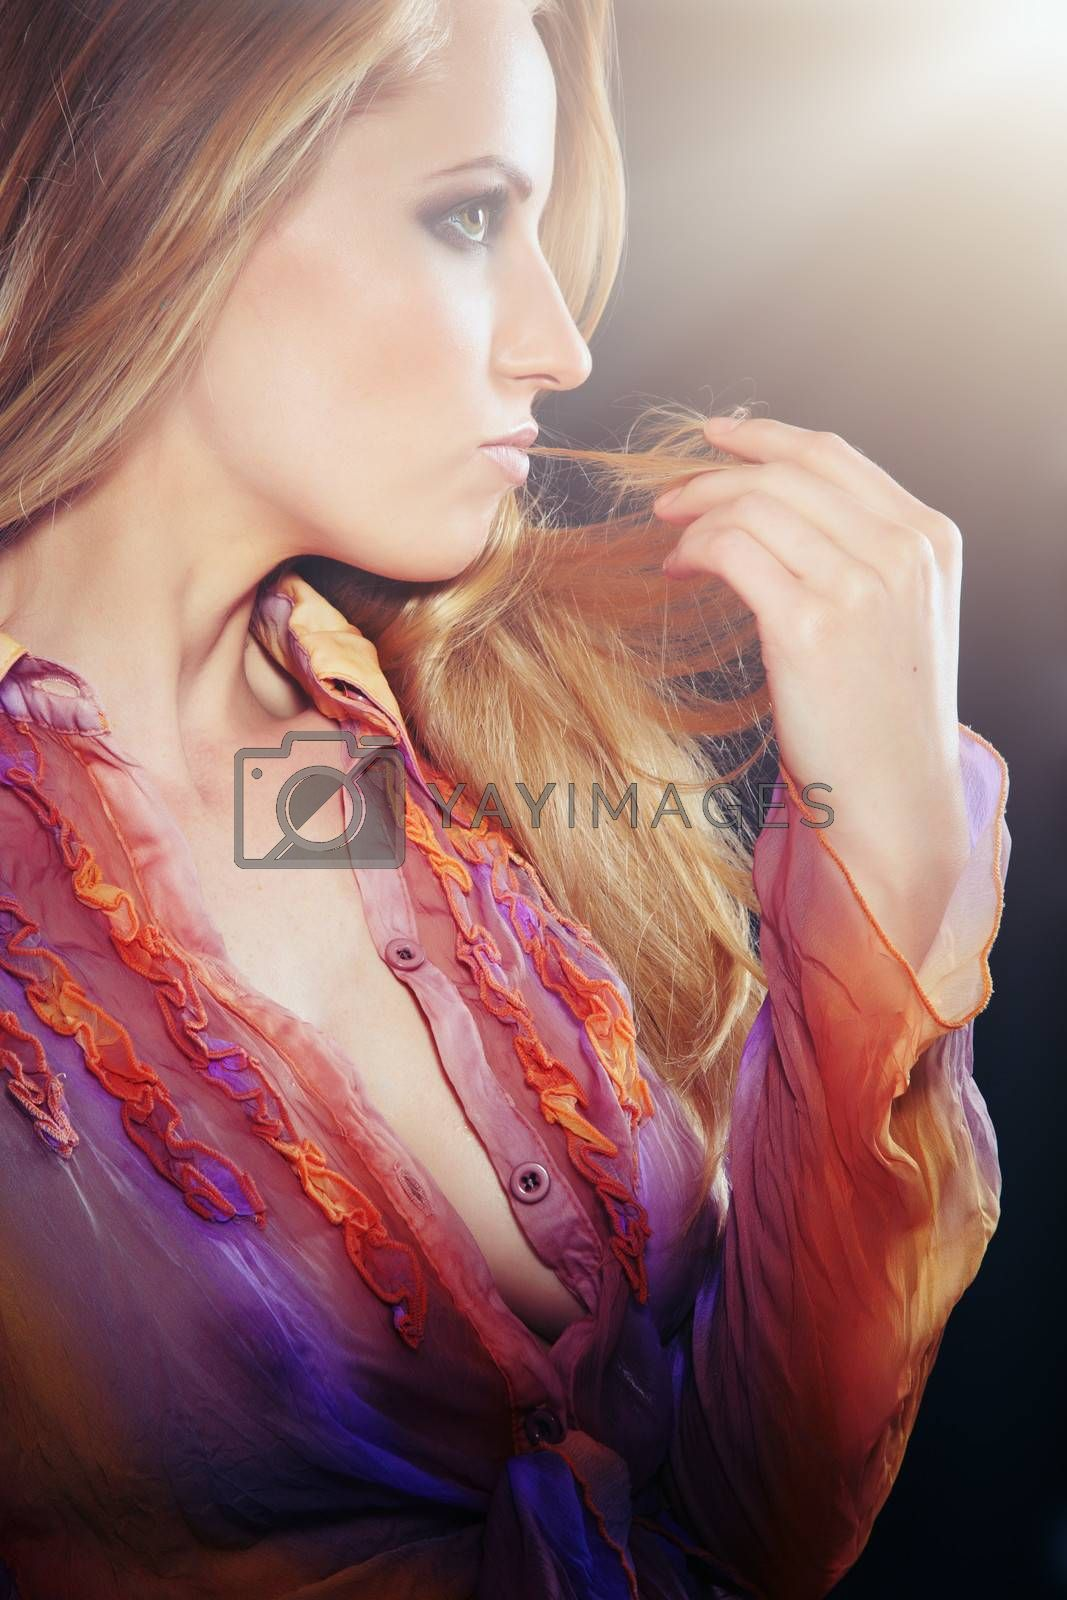 Beautiful seductive lady in studio with backlight